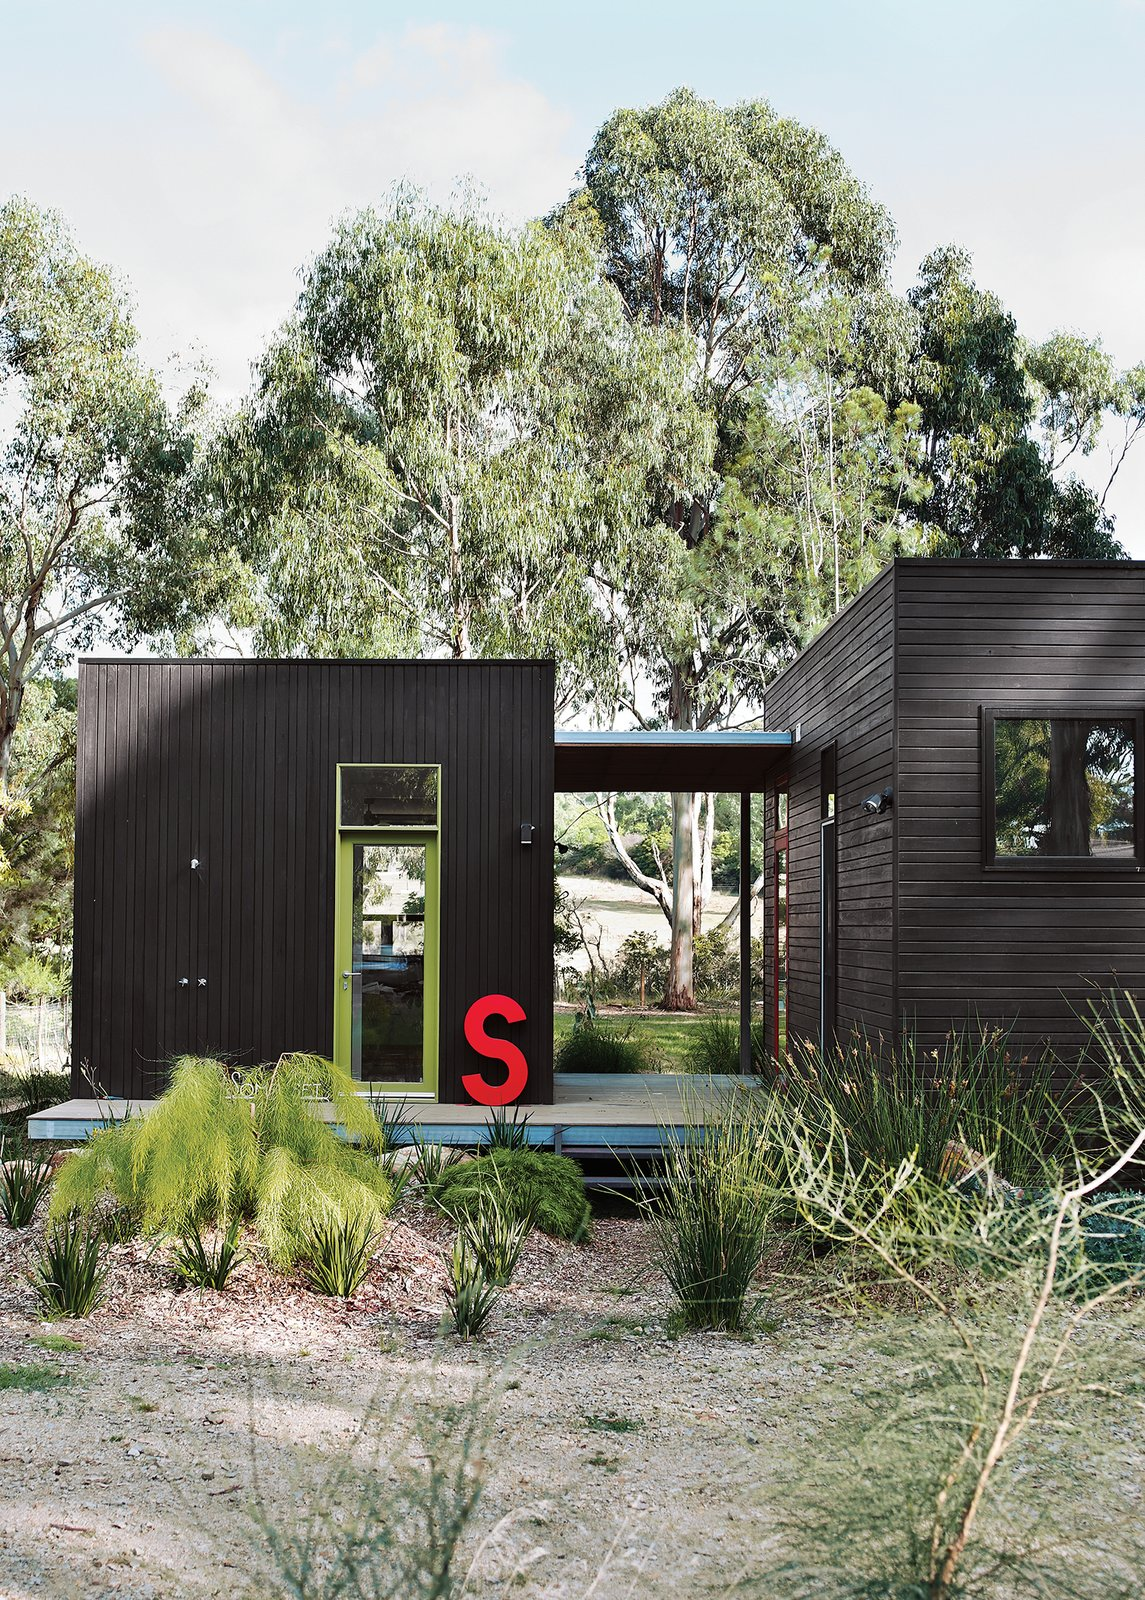 For her family's house near Melbourne, Anna Horne created a series of prefab wood modules using a design from the company Prebuilt. She found the old industrial letter at a factory; it stands for Somerset, the name of the house. The Best Prefab Homes in Australia - Photo 6 of 11